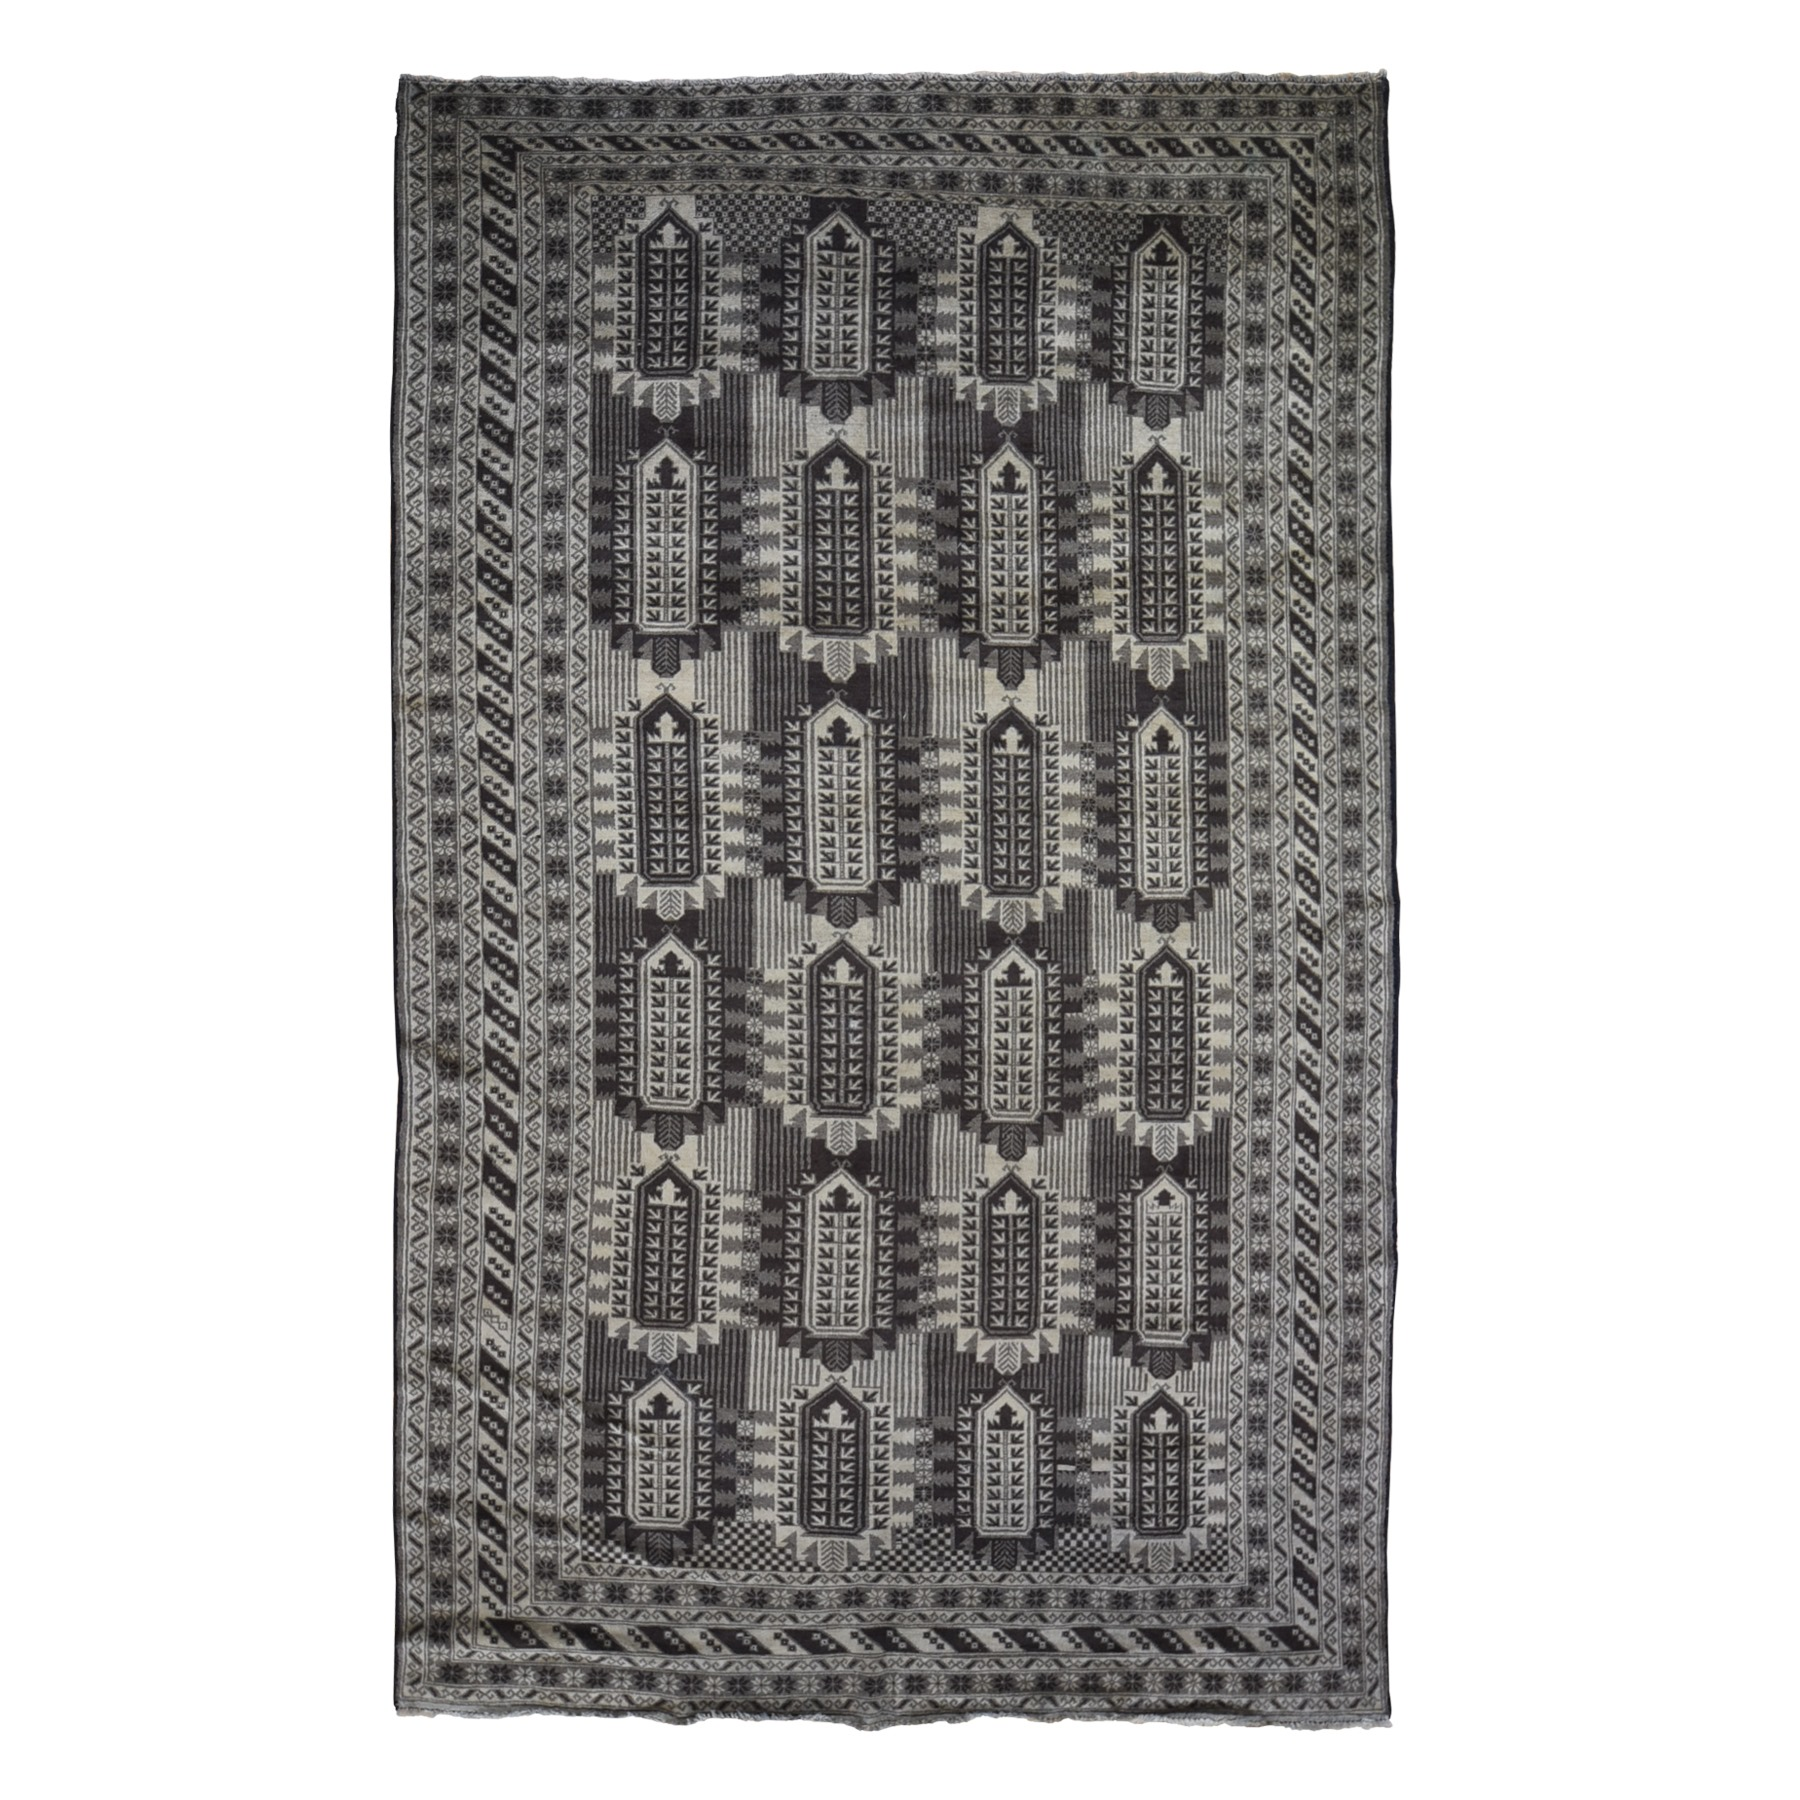 Nomadic And Village Collection Hand Knotted Brown Rug No: 1119542